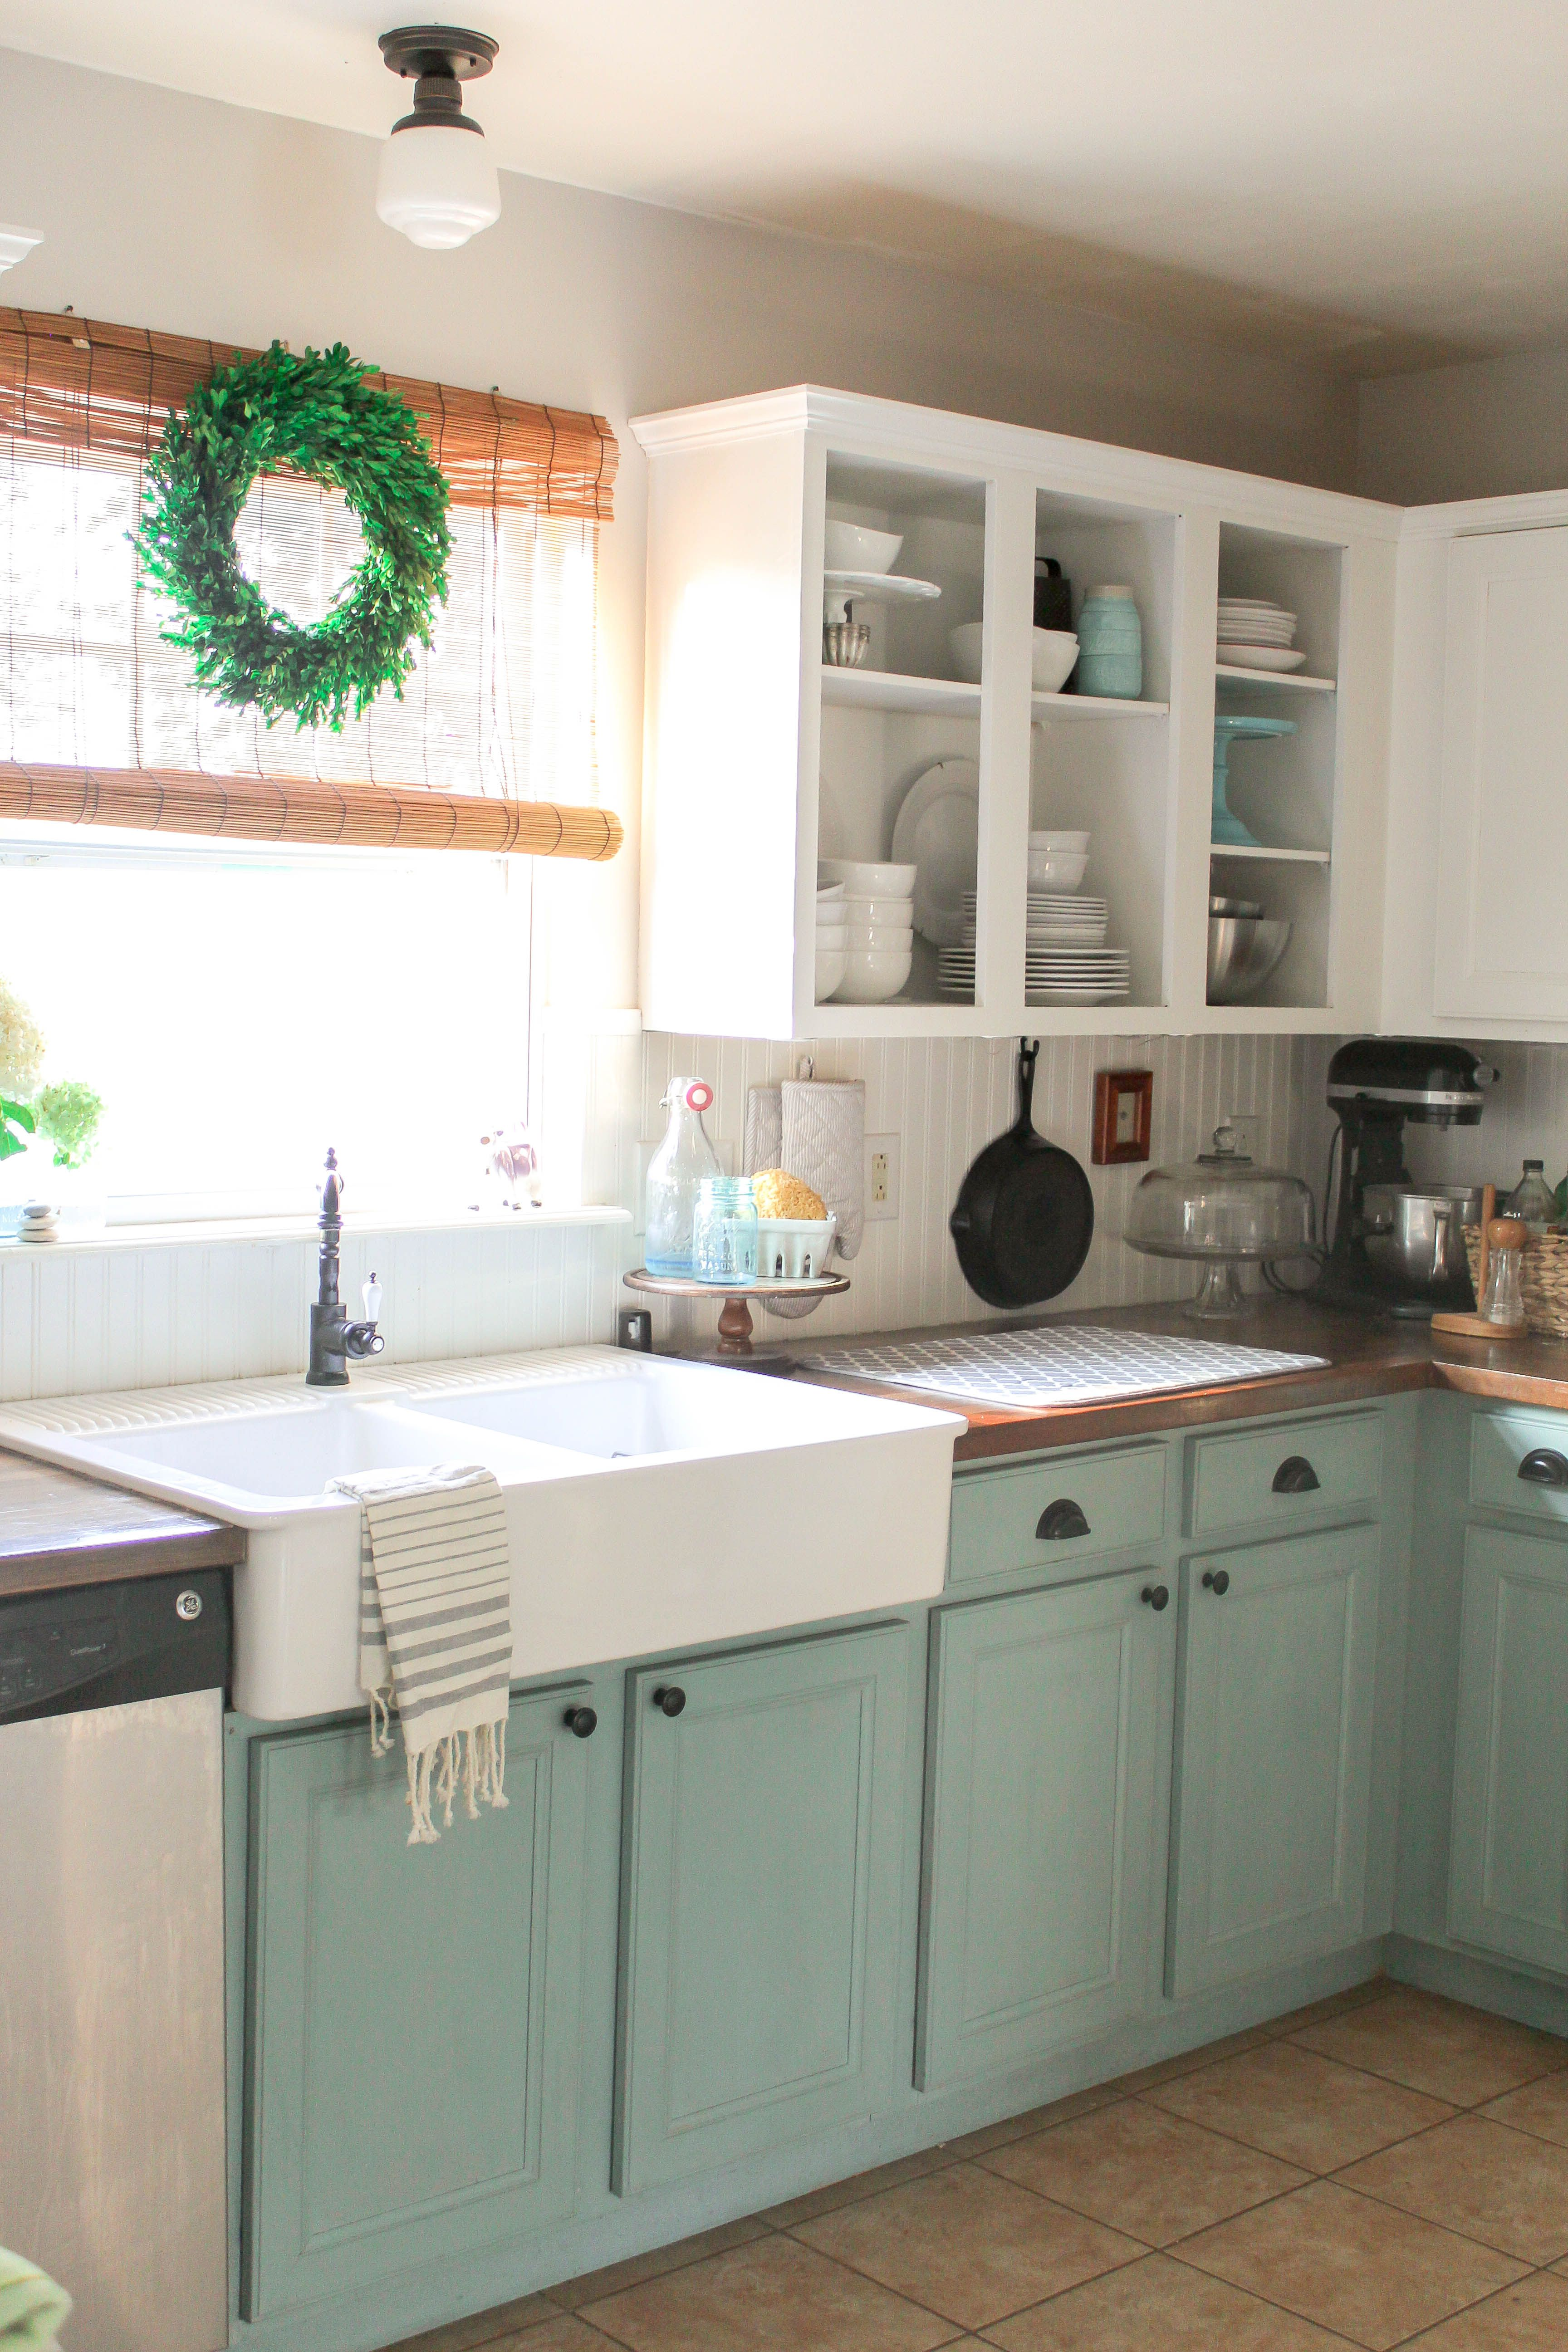 Keuken Verven Annie Sloan Chalk Painted Kitchen Cabinets 2 Years Later Home Kitchen